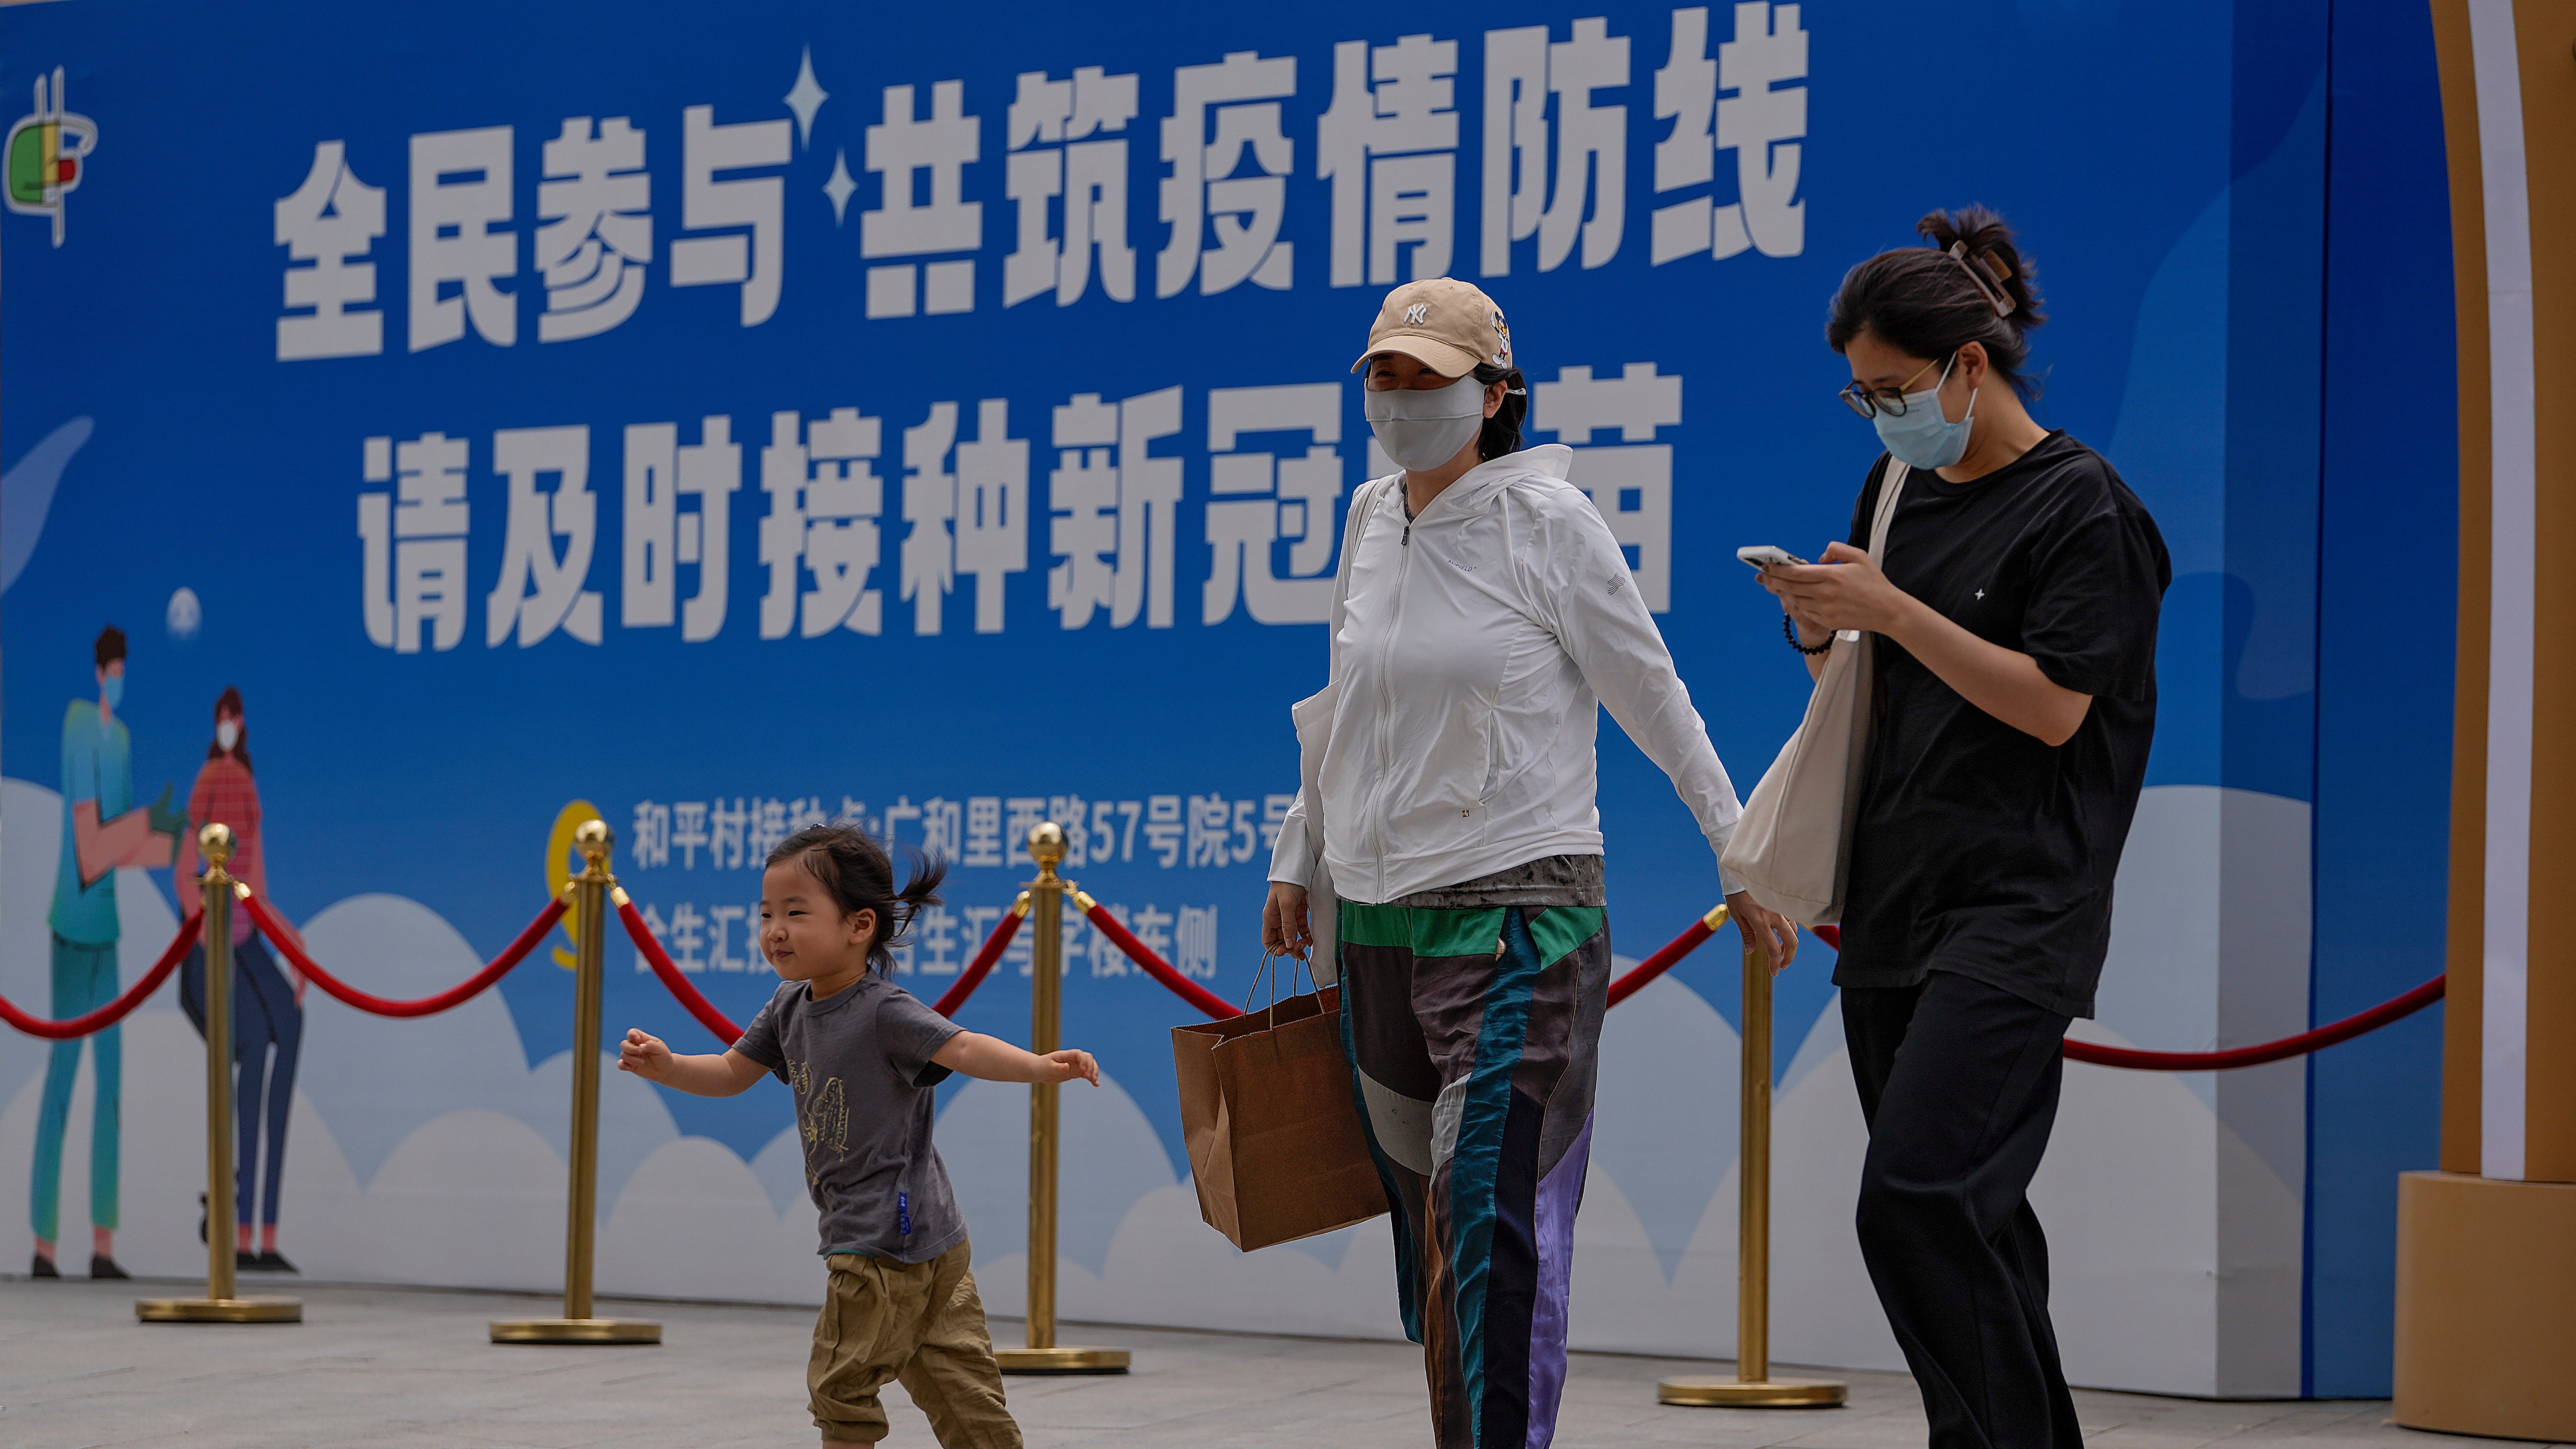 """Women wearing face masks to help curb the spread of the coronavirus and a child walk by a billboard showing the words """"All people participate in building a line of defense against the epidemic, please get the vaccine in time"""" on display outside a shopping mall in Beijing on May 24, 2021."""